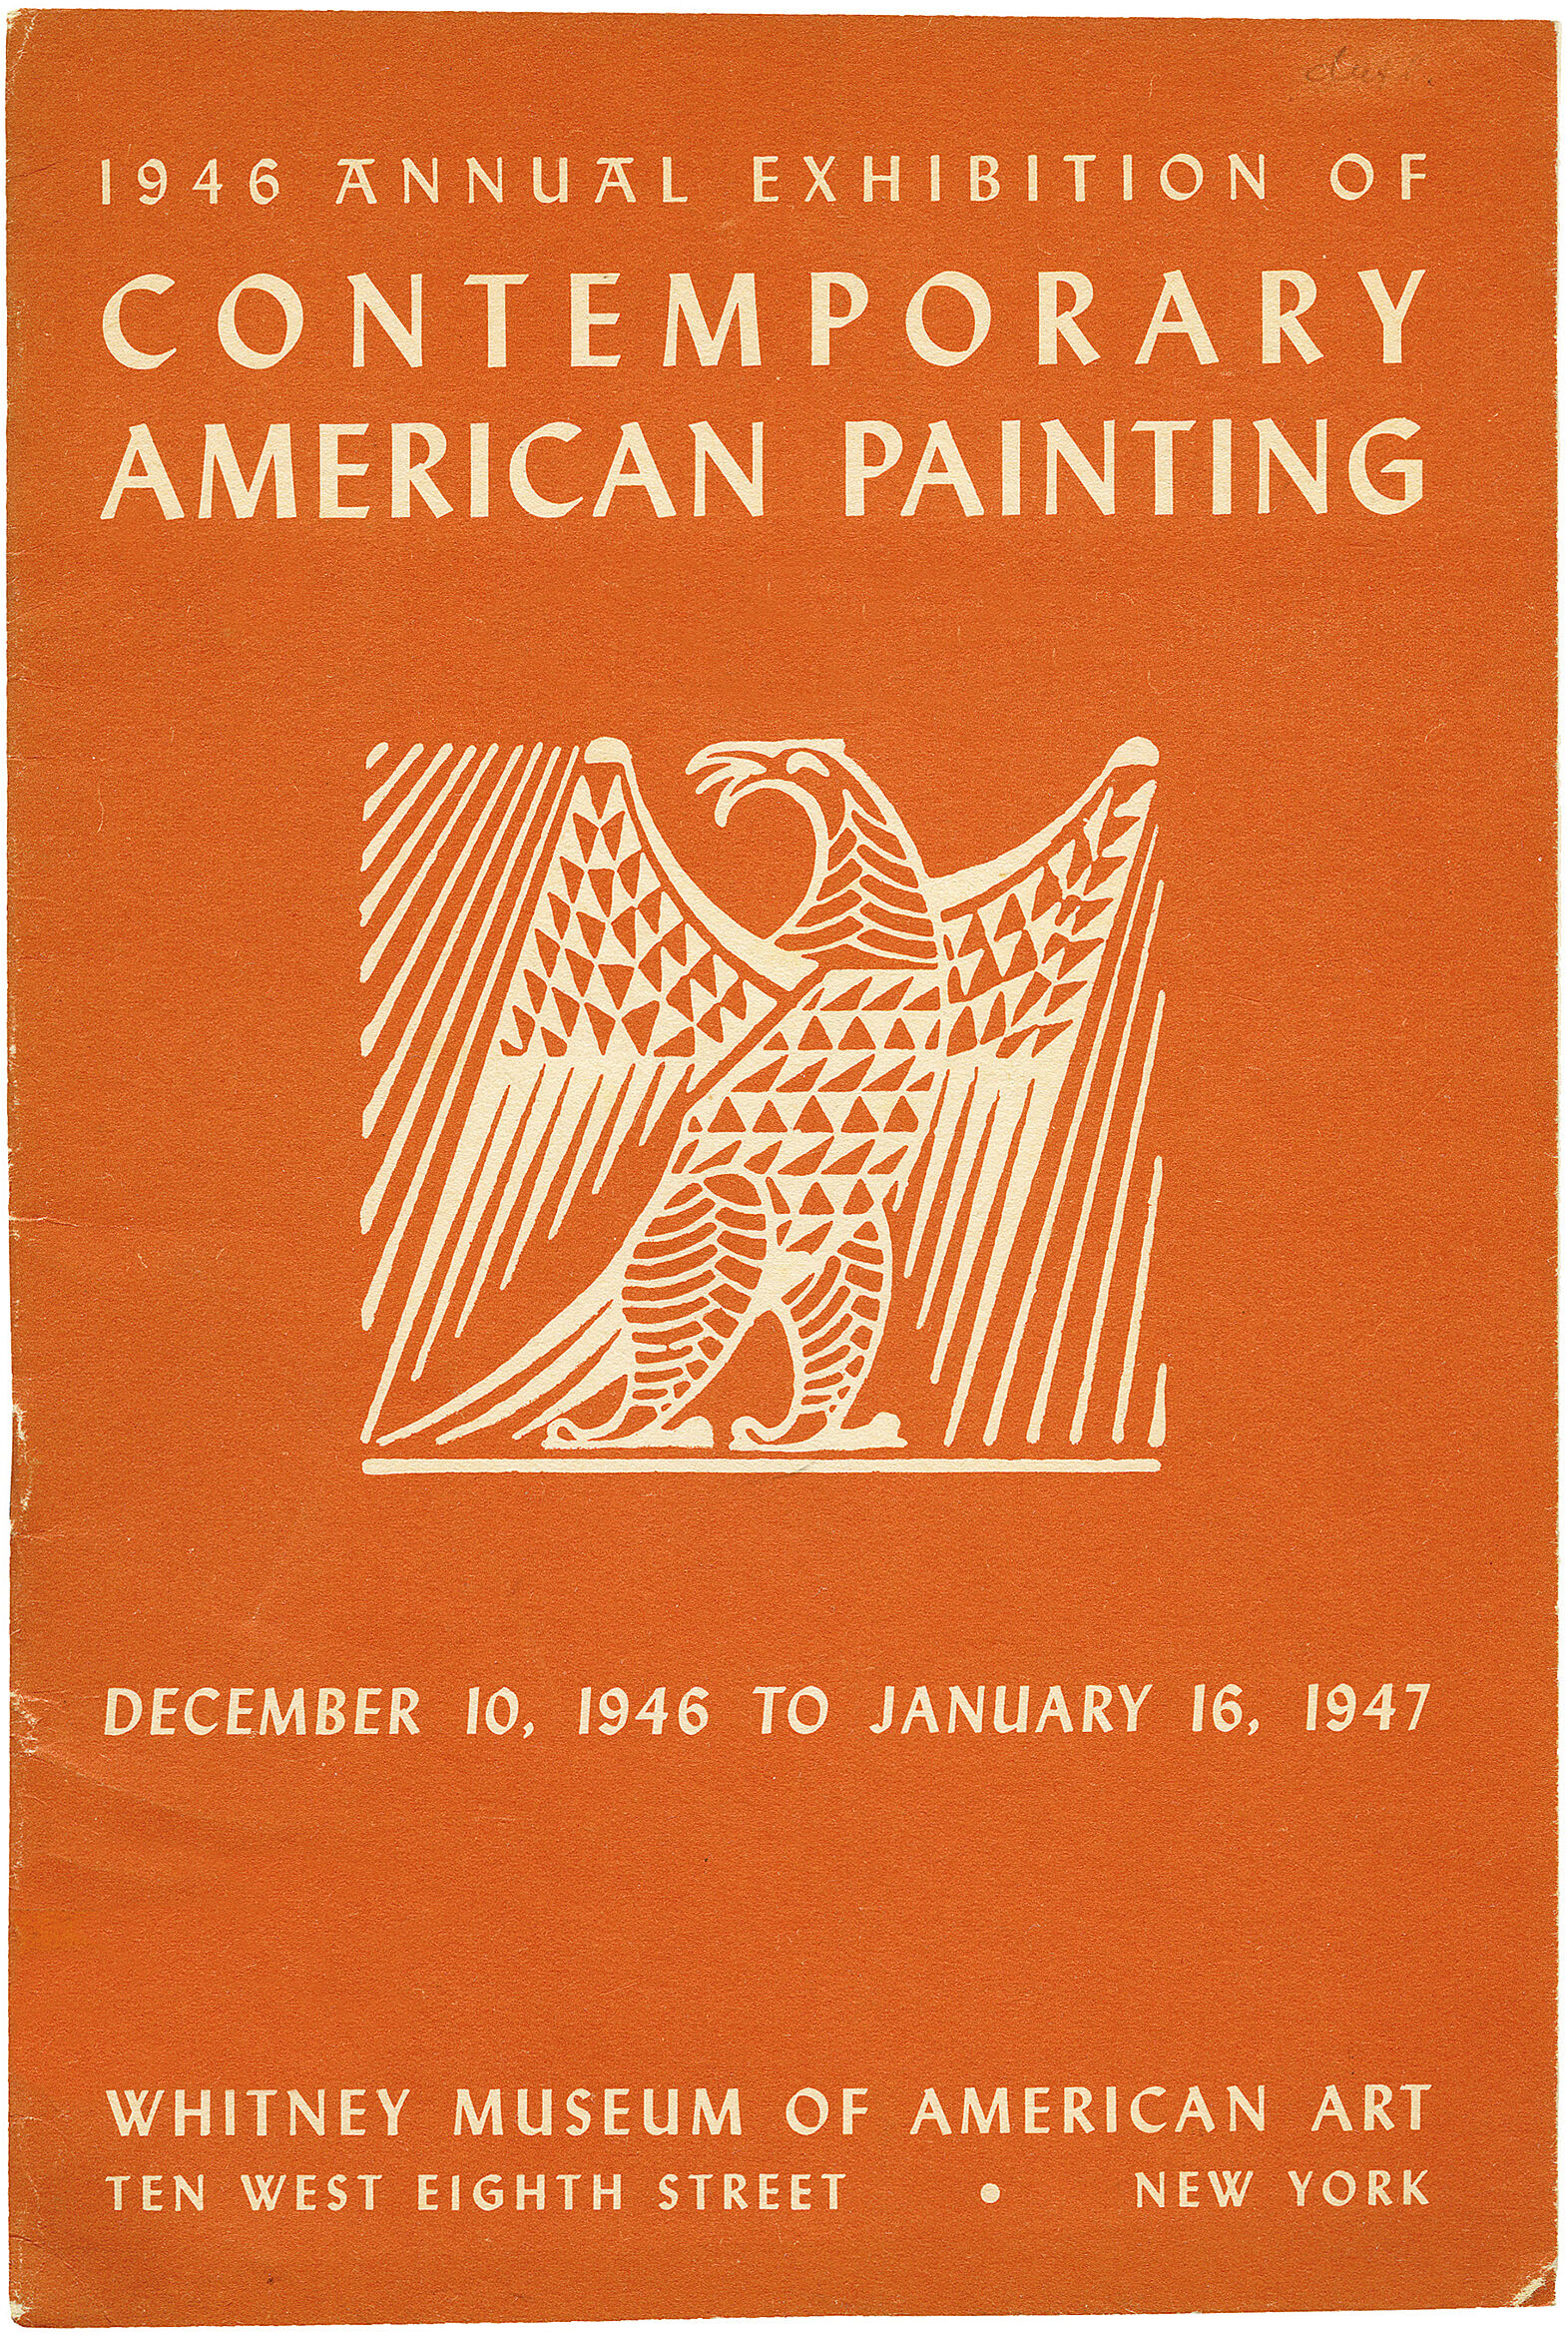 Cover for 1946 Annual Exhibition of Contemporary American Painting catalogue